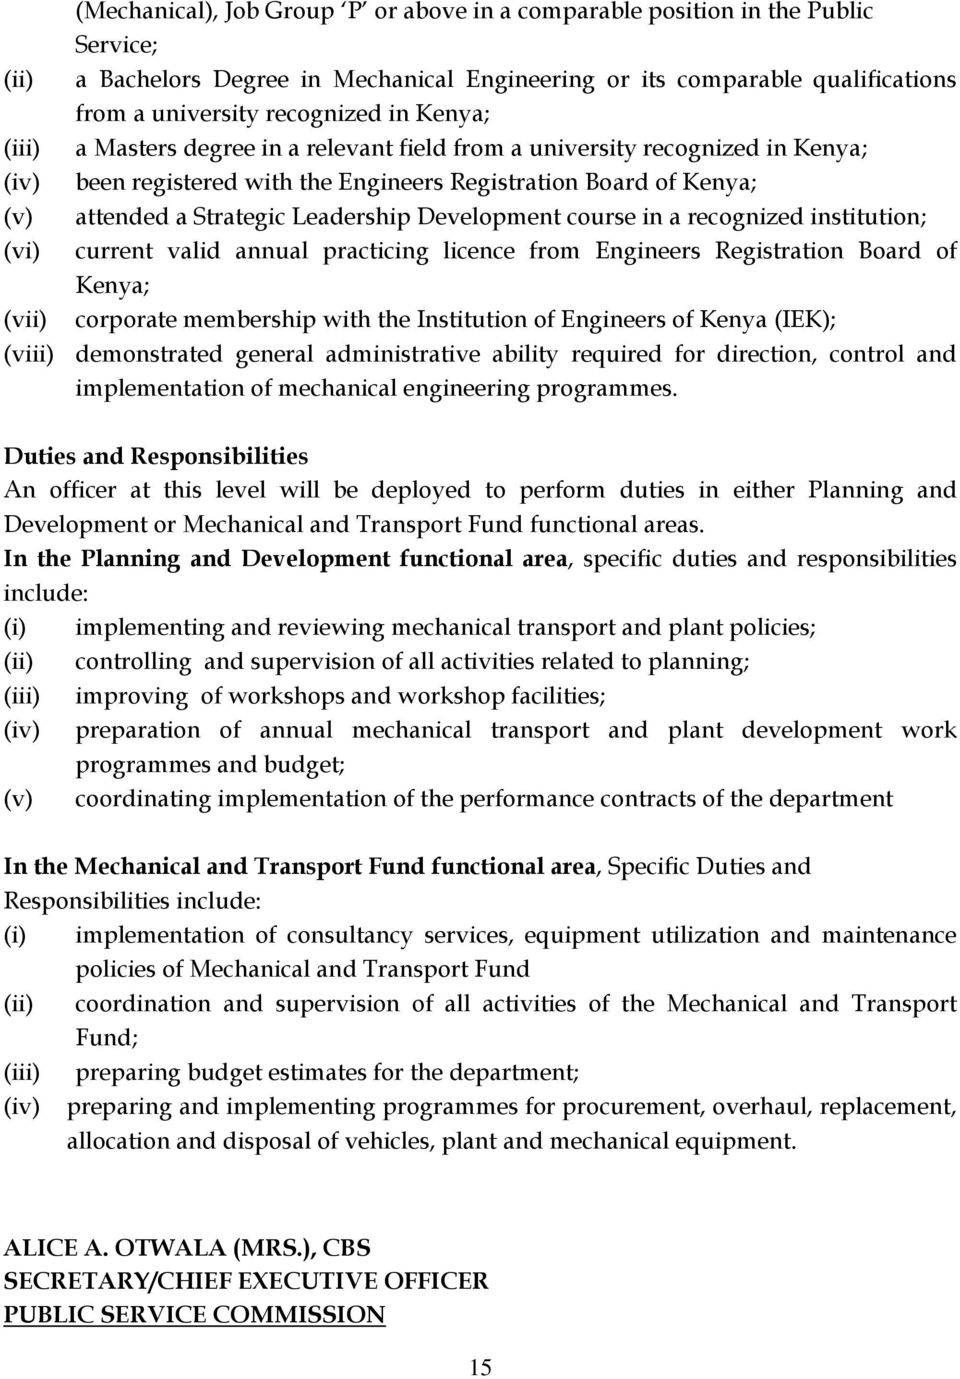 Development course in a recognized institution; (vi) current valid annual practicing licence from Engineers Registration Board of Kenya; (vii) corporate membership with the Institution of Engineers